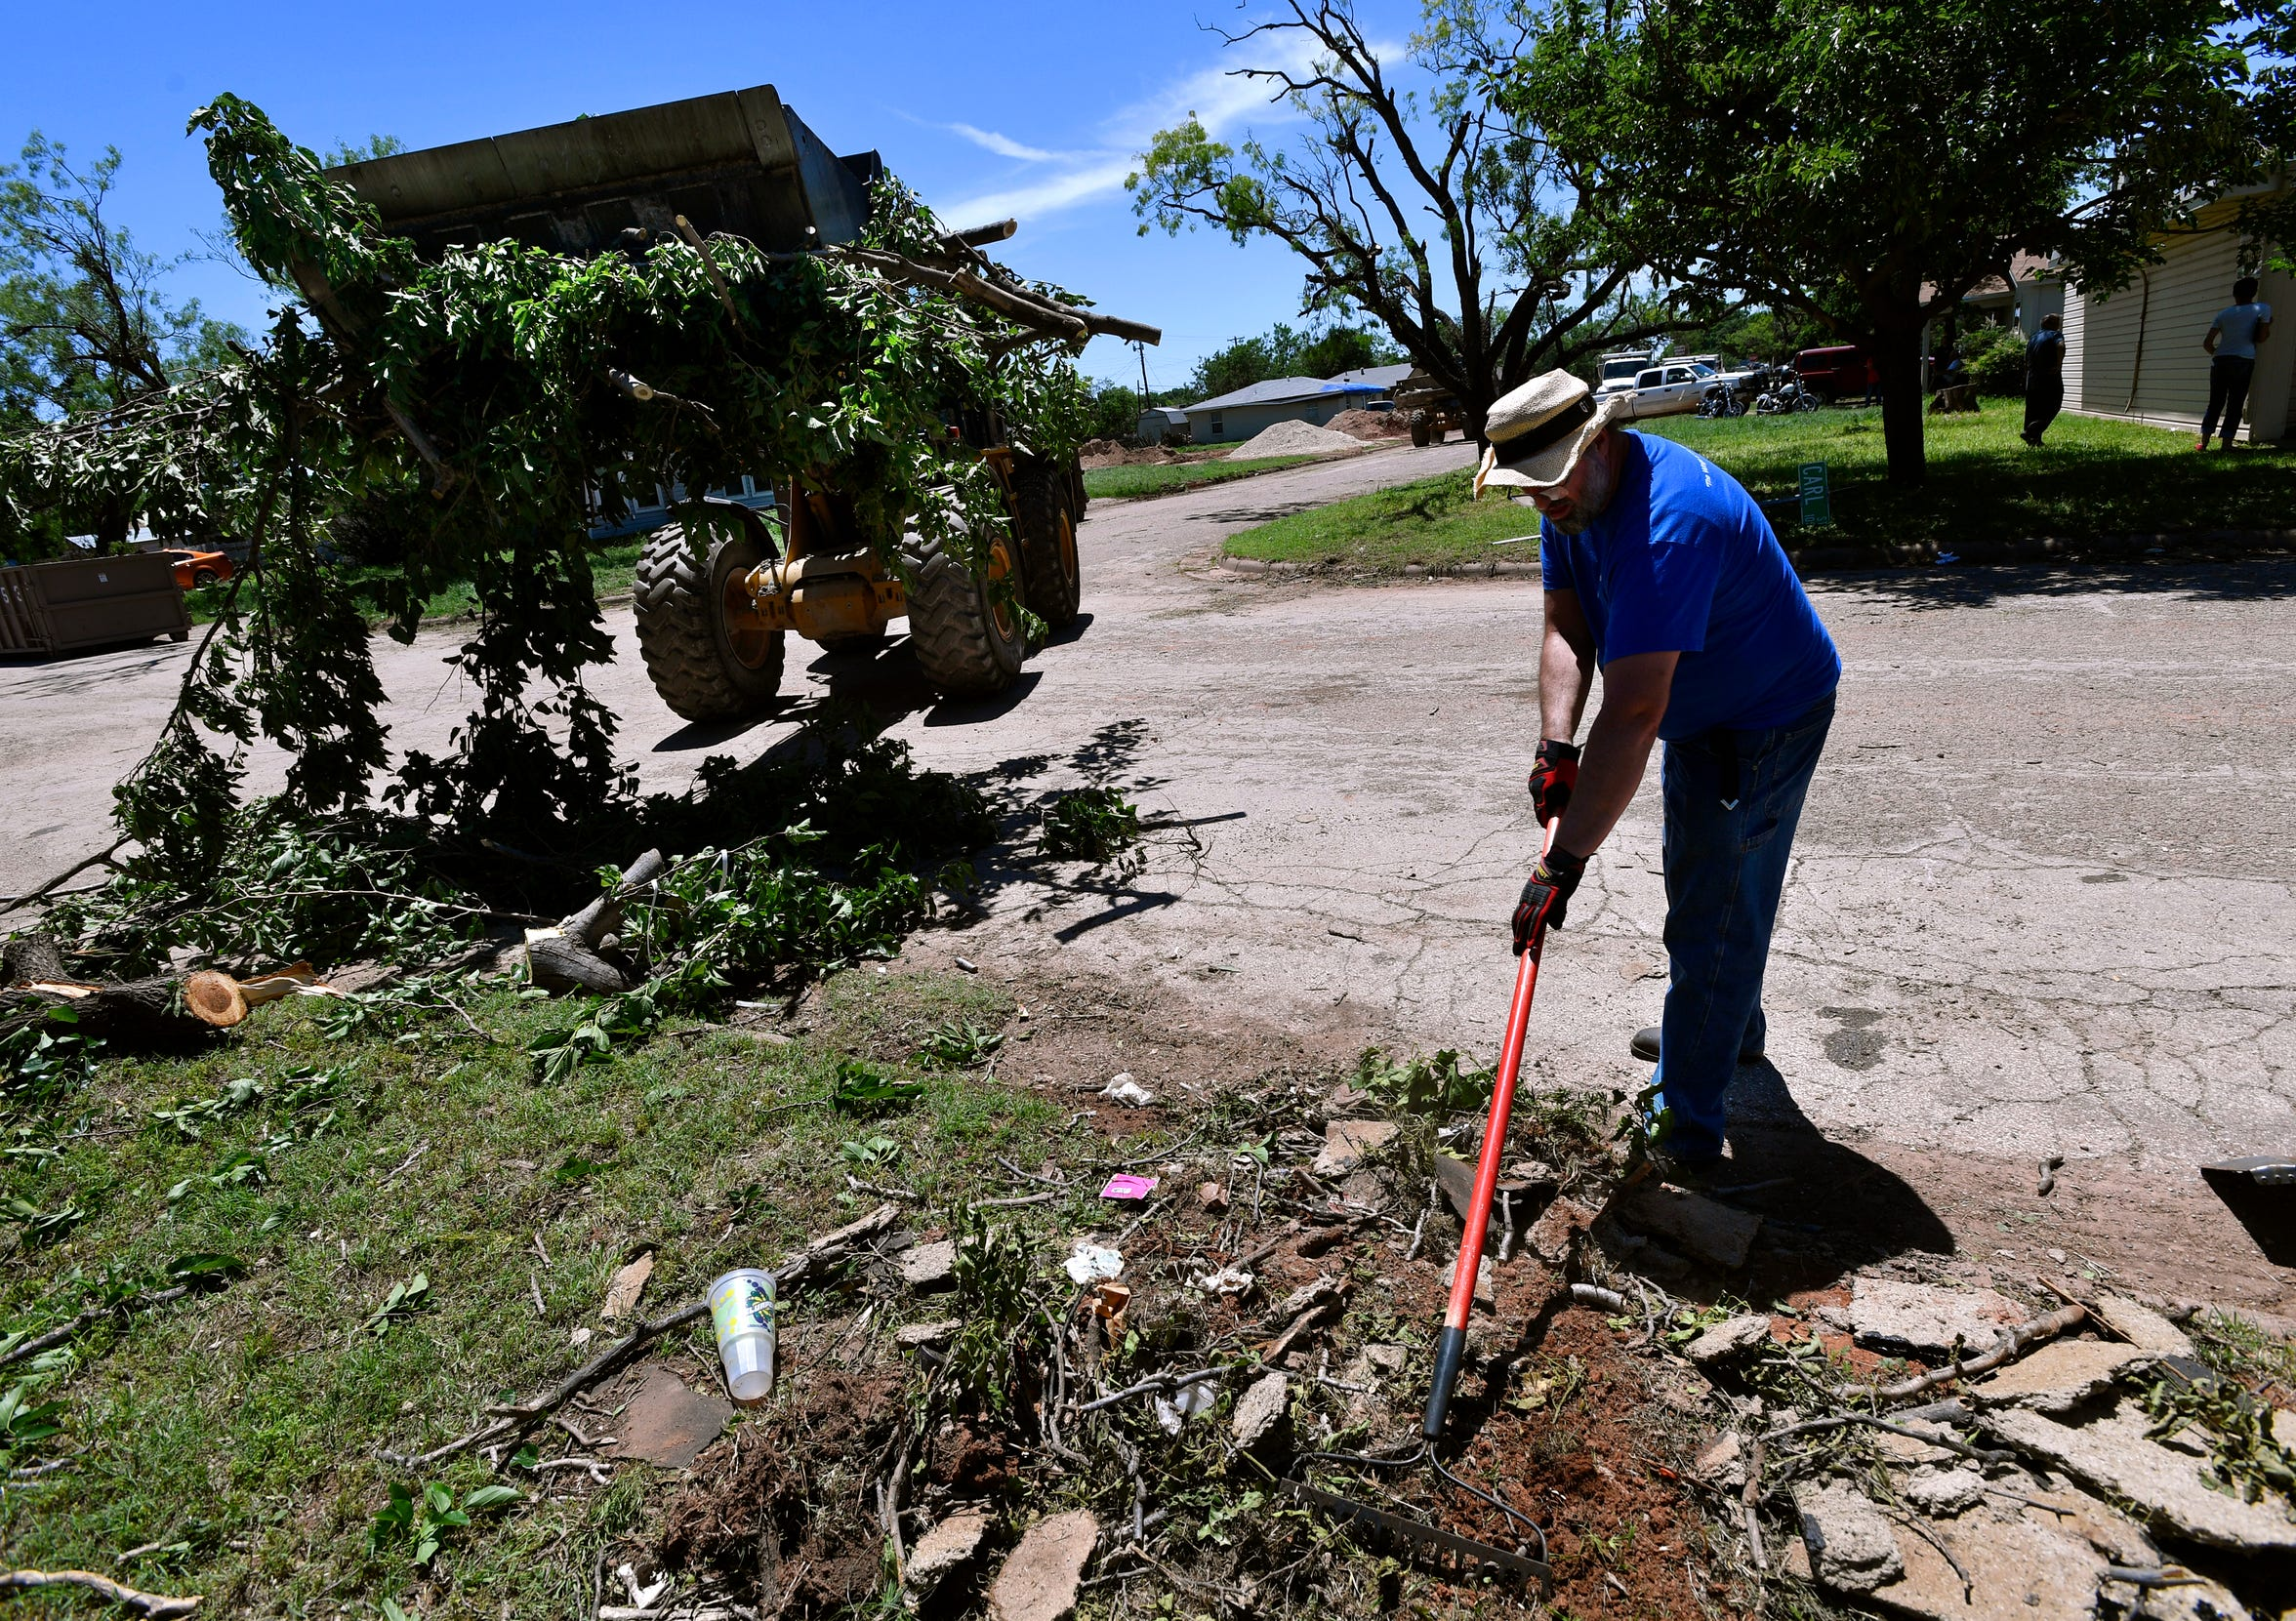 Volunteer David Cline rakes debris while a City of Abilene front-end loader scoops up a pile of tree limbs at the intersection of South Second and Carl streets on May 19.